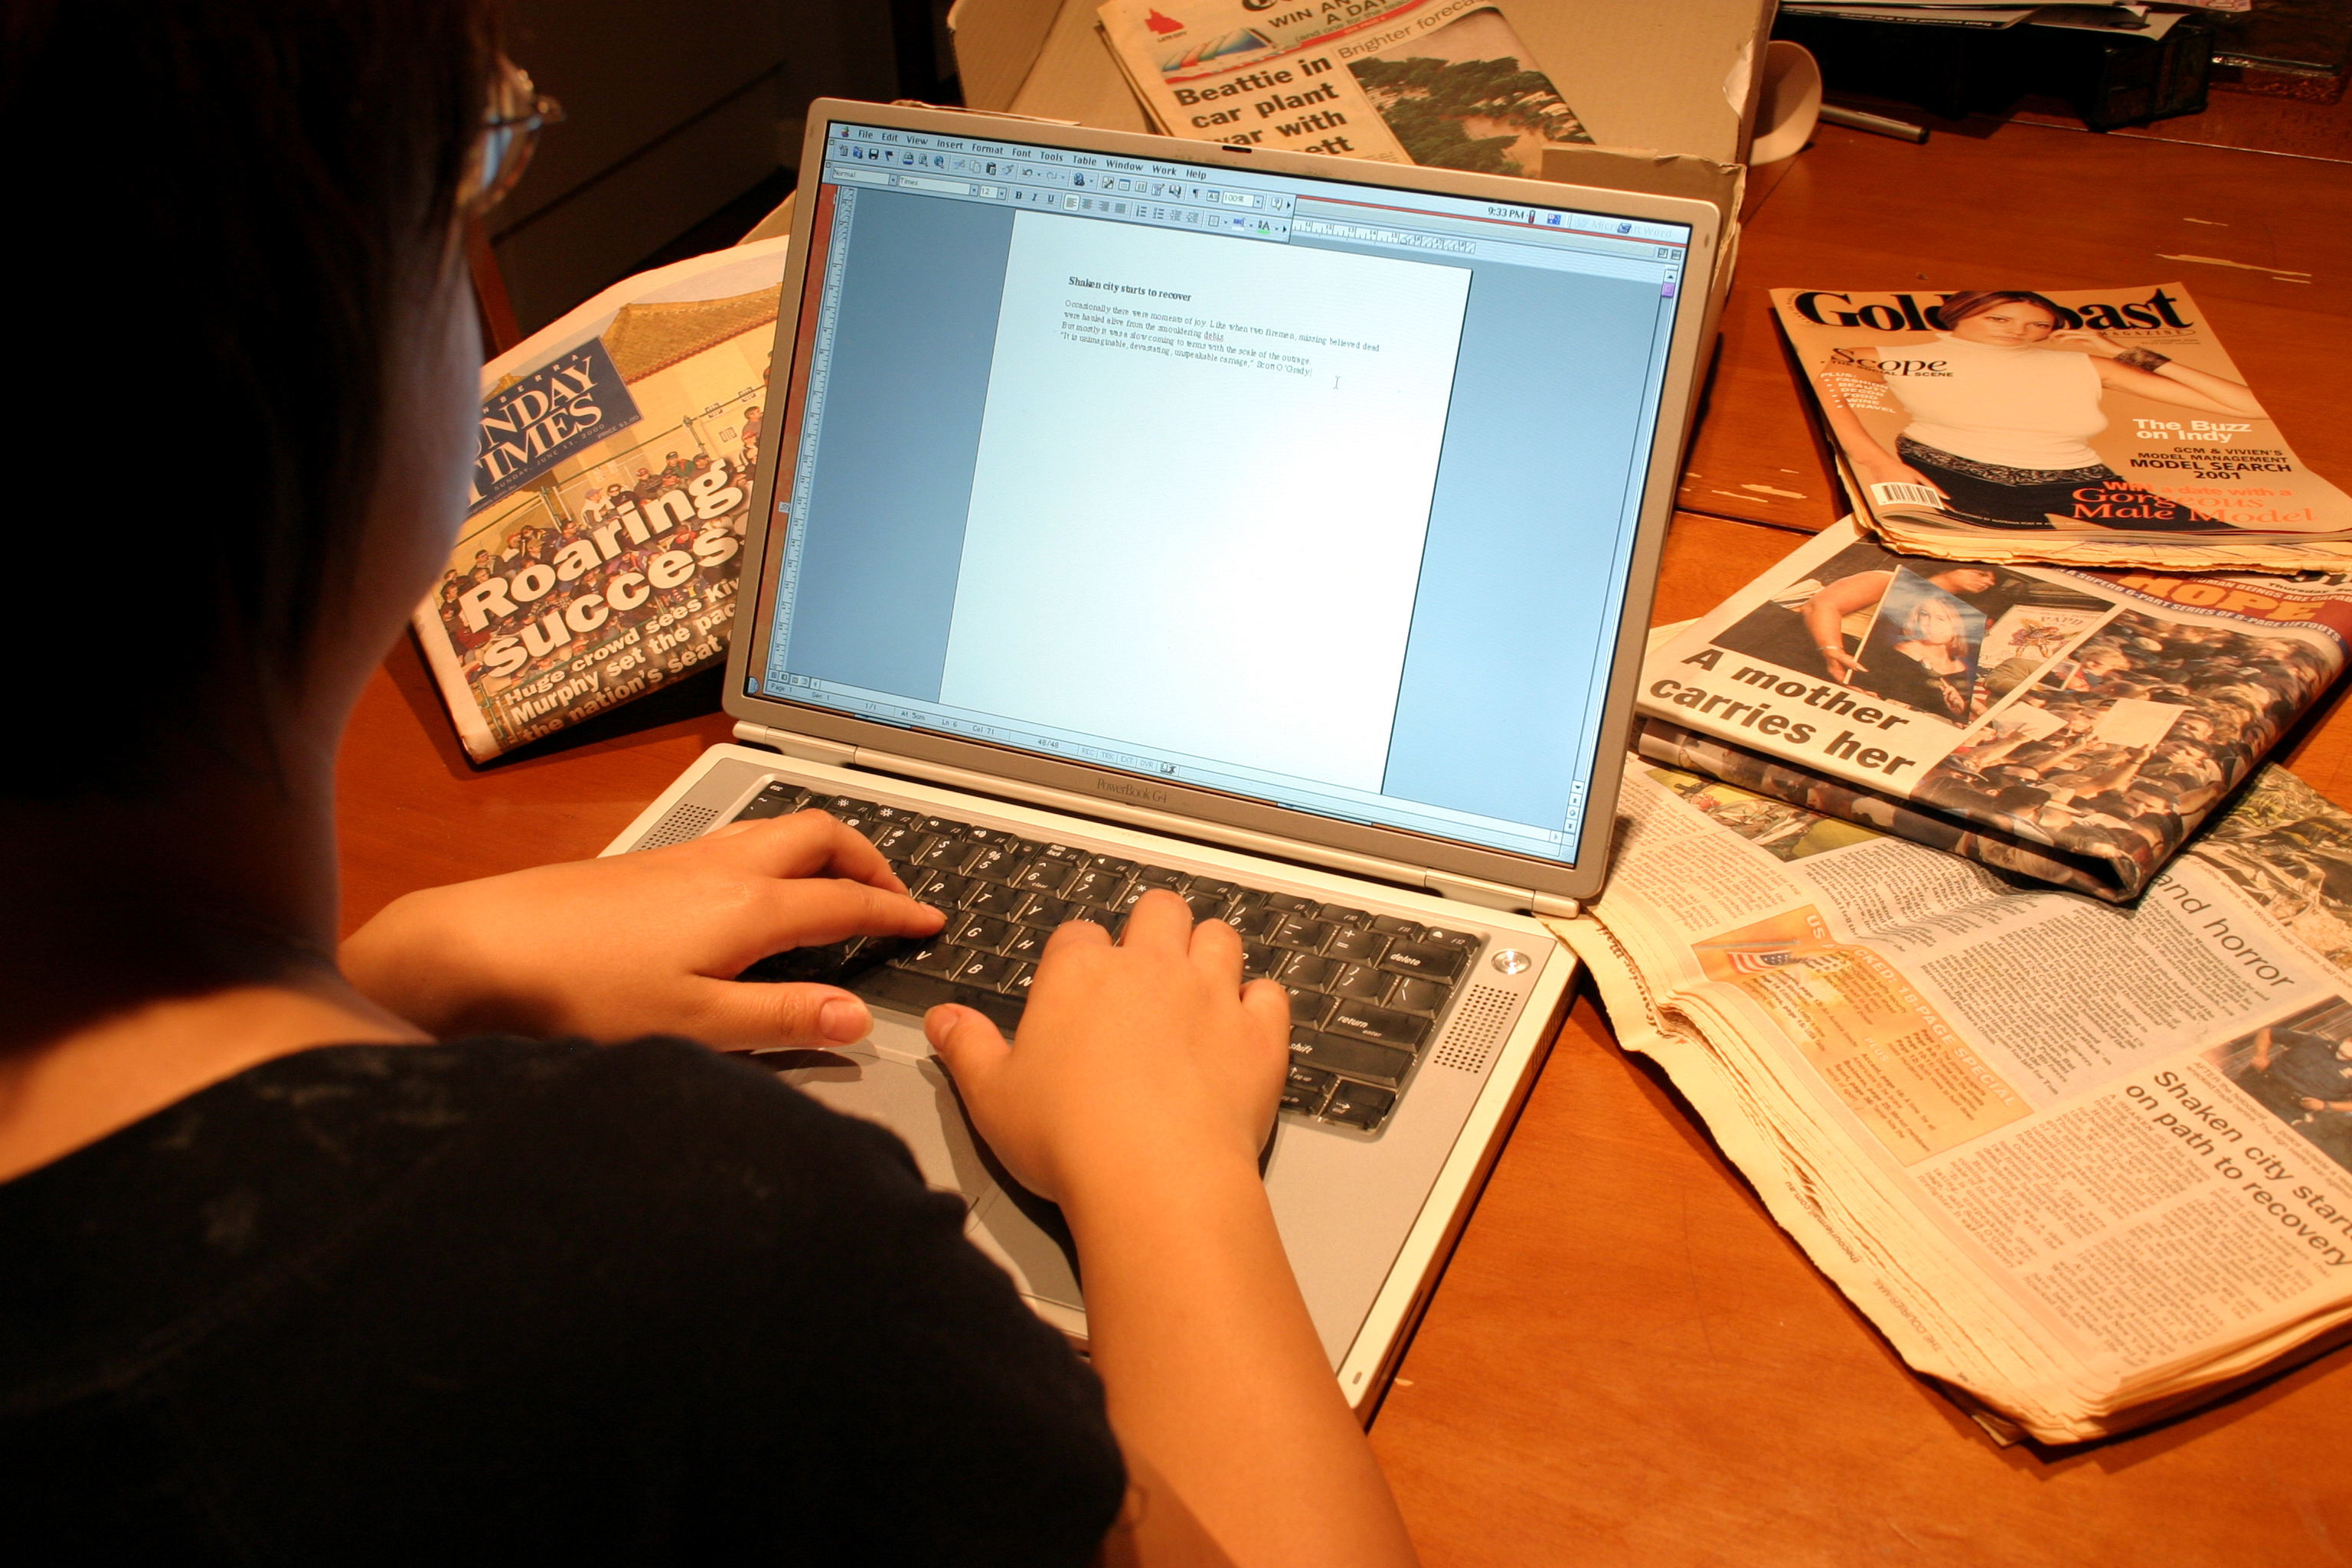 How Did You Get Your Start as a Freelance Writer?